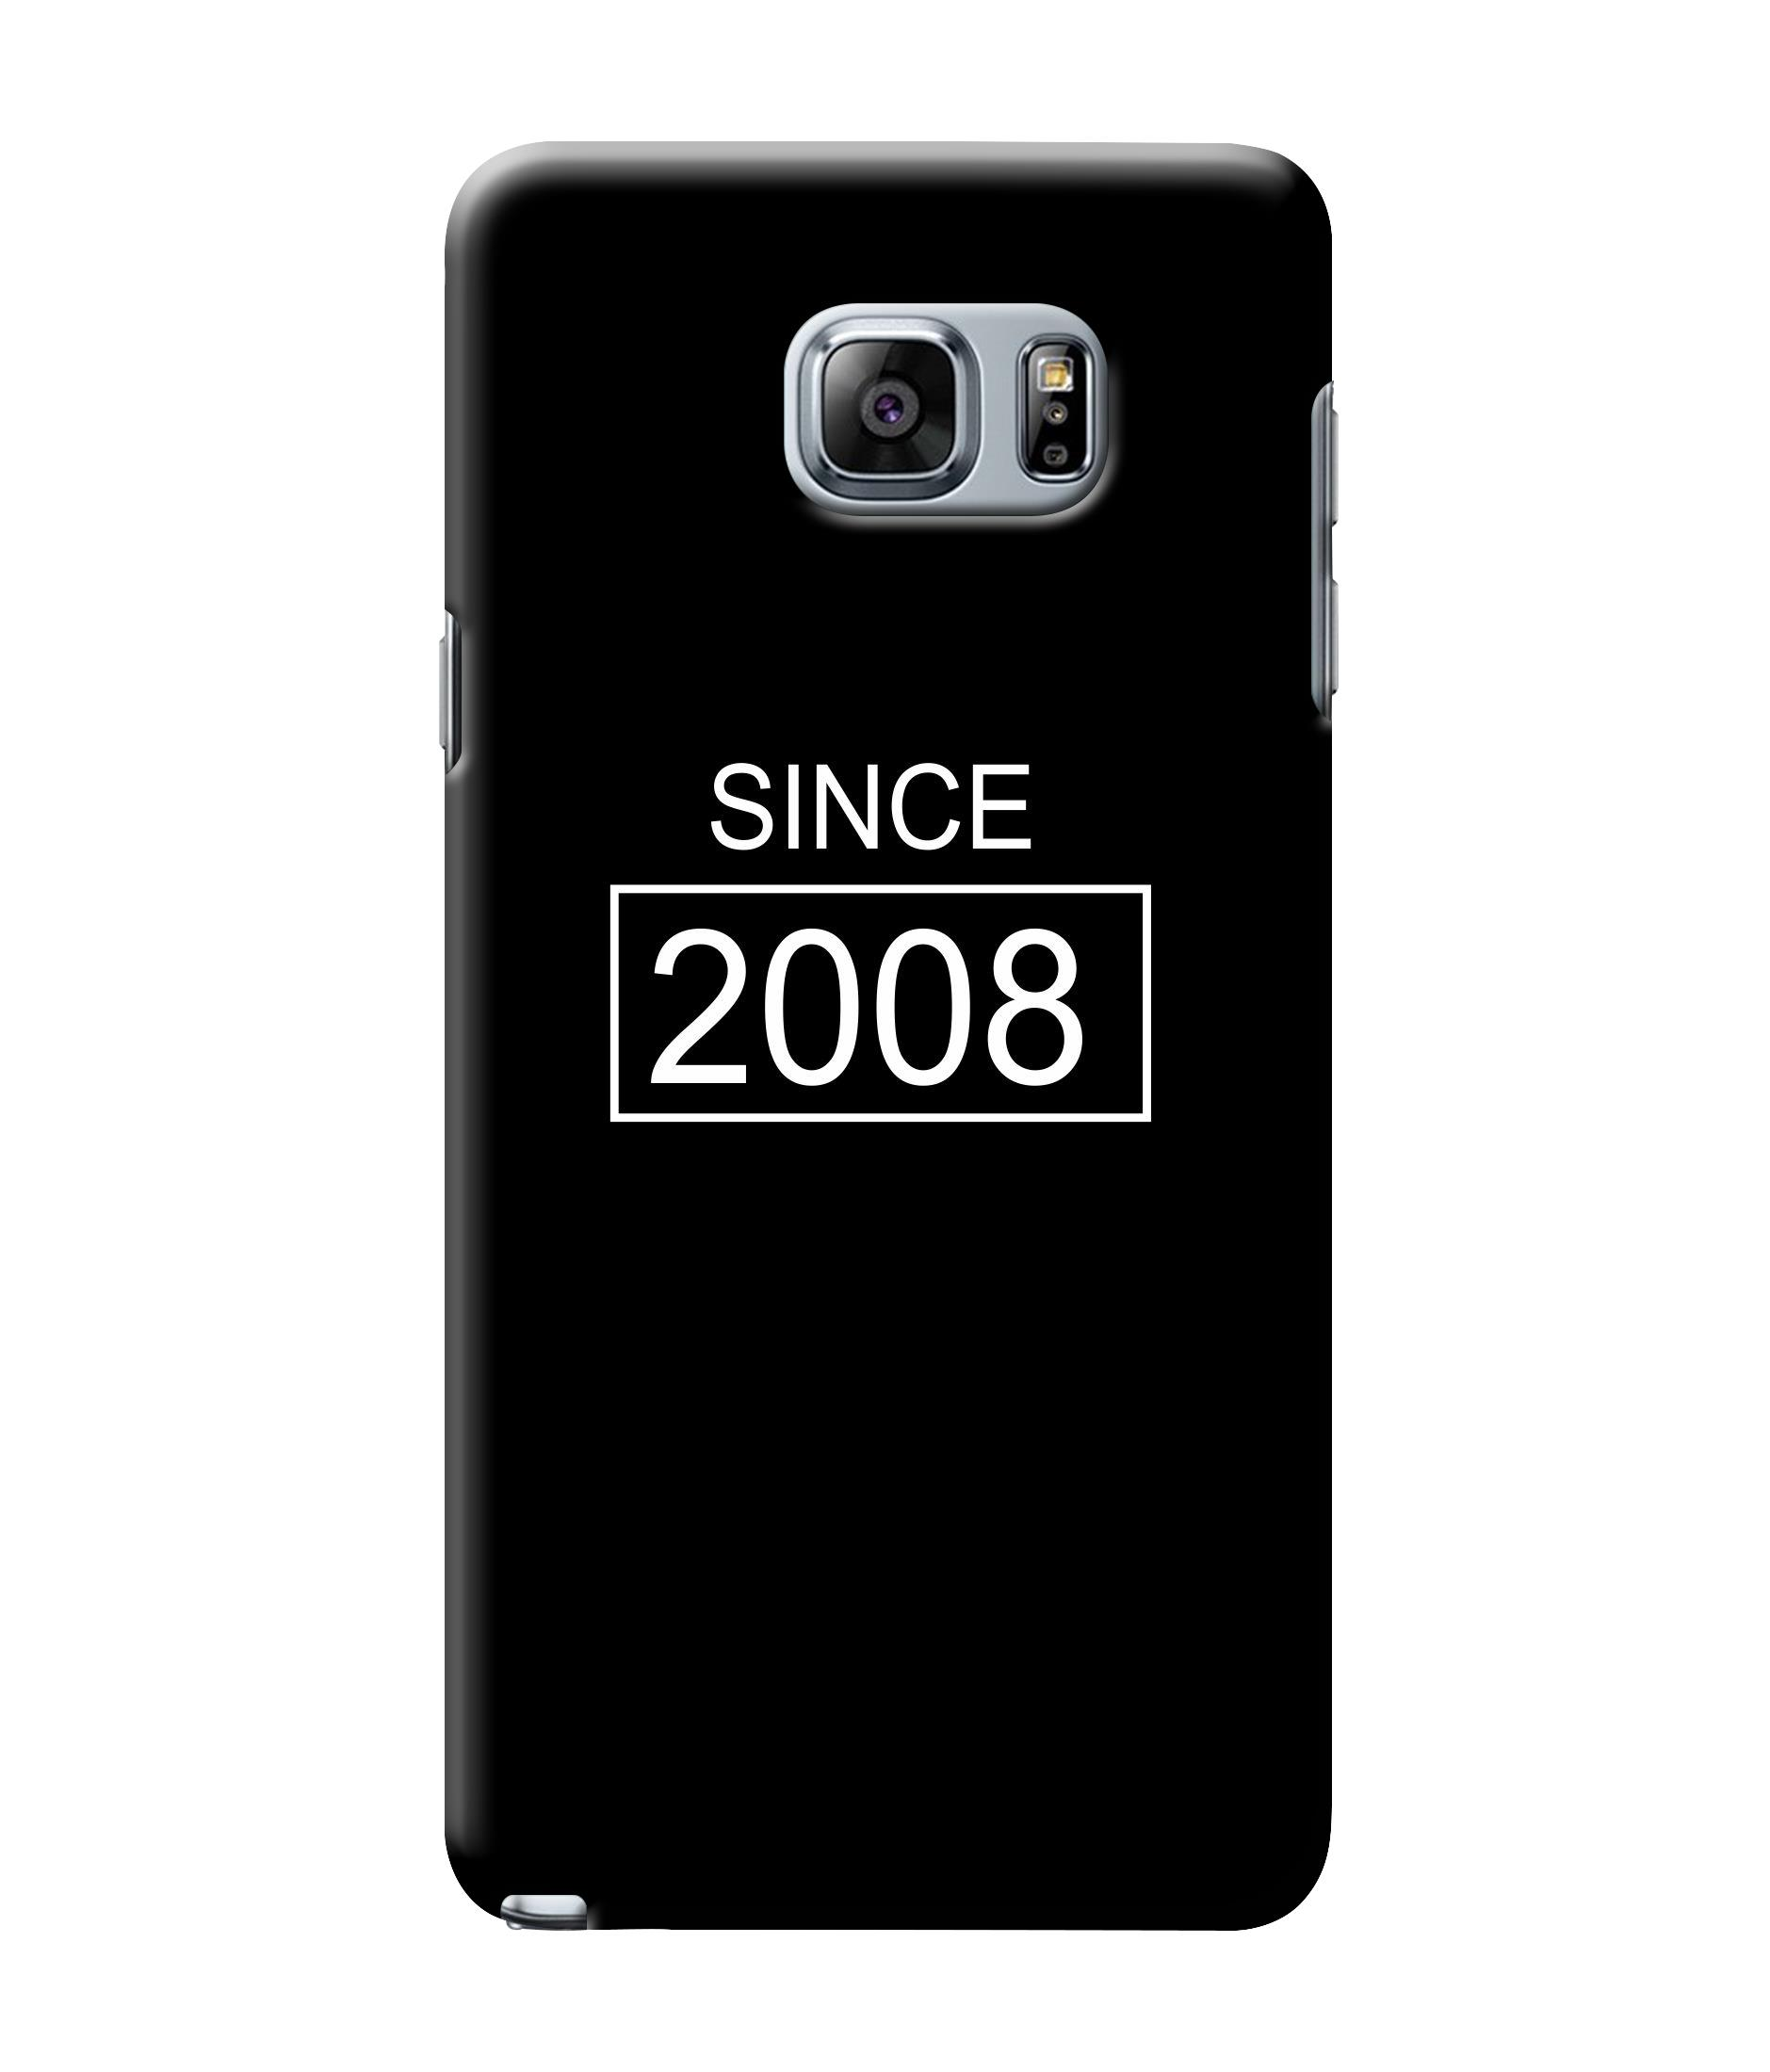 caseophile2 Samsung Galaxy Note 5 Since 2008 Mobile Case